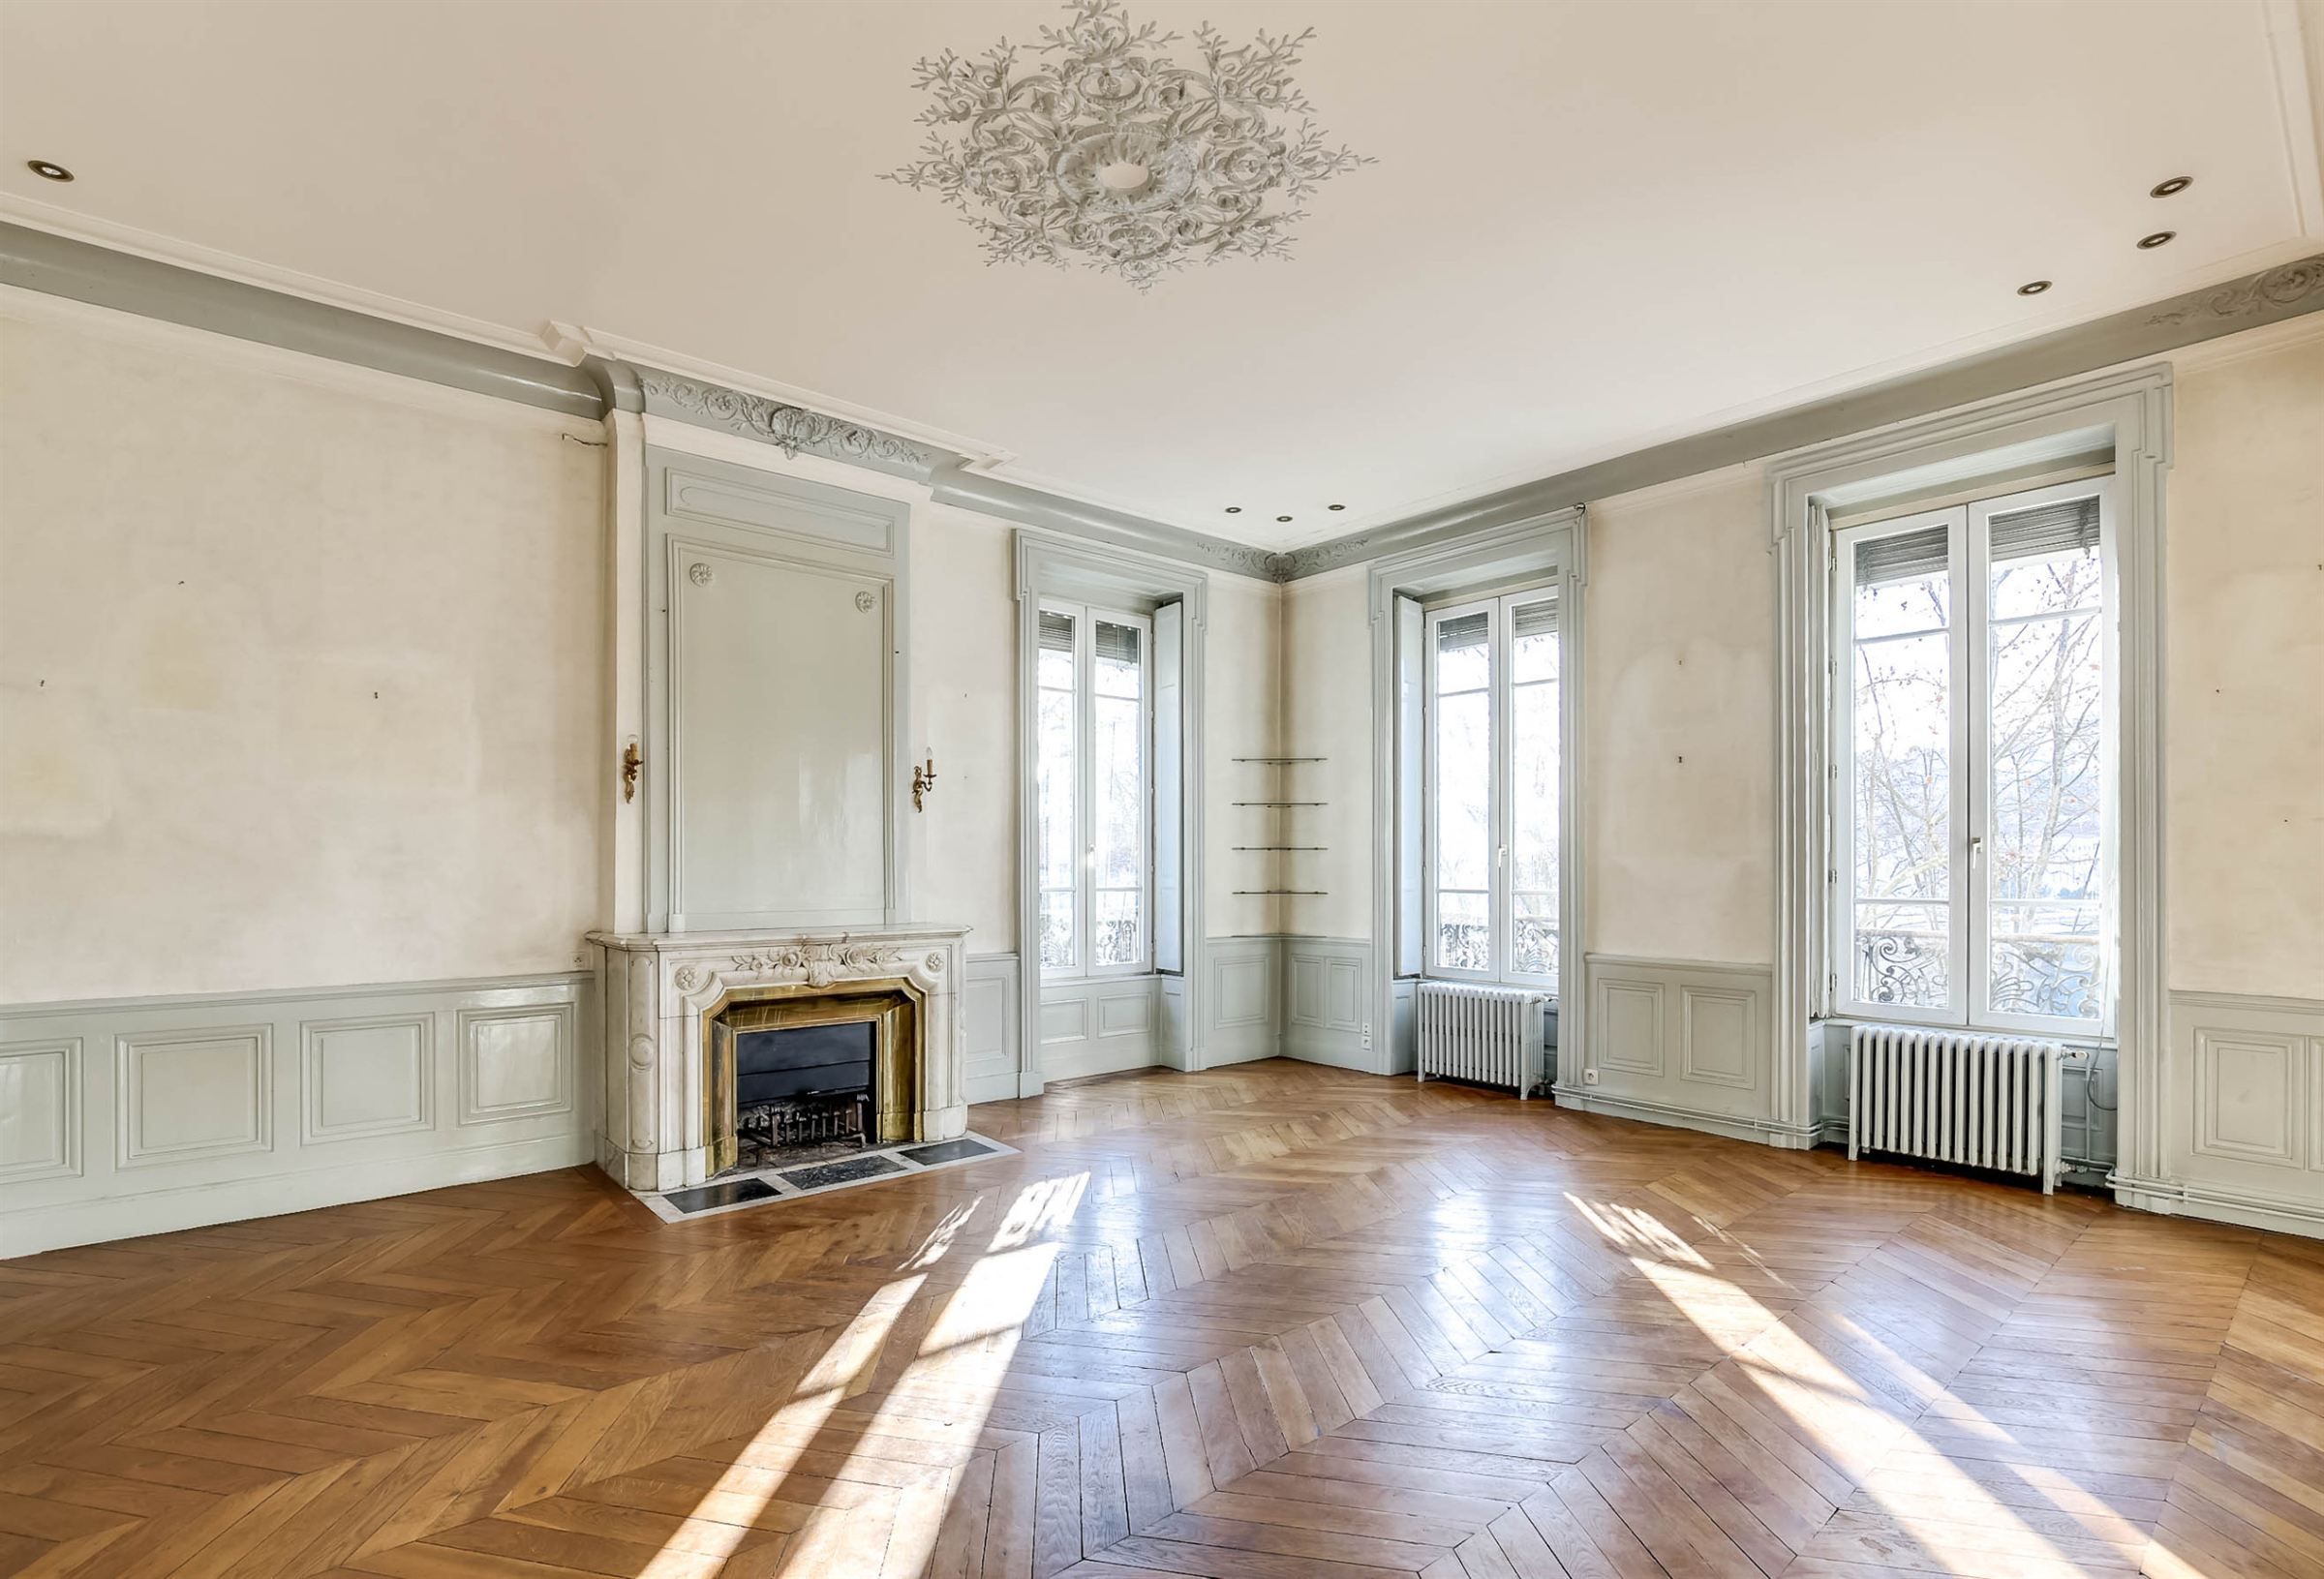 Property For Sale at LYON 6ème - Appartement d'exception de 216 m² dans superbe immeuble haussmannien